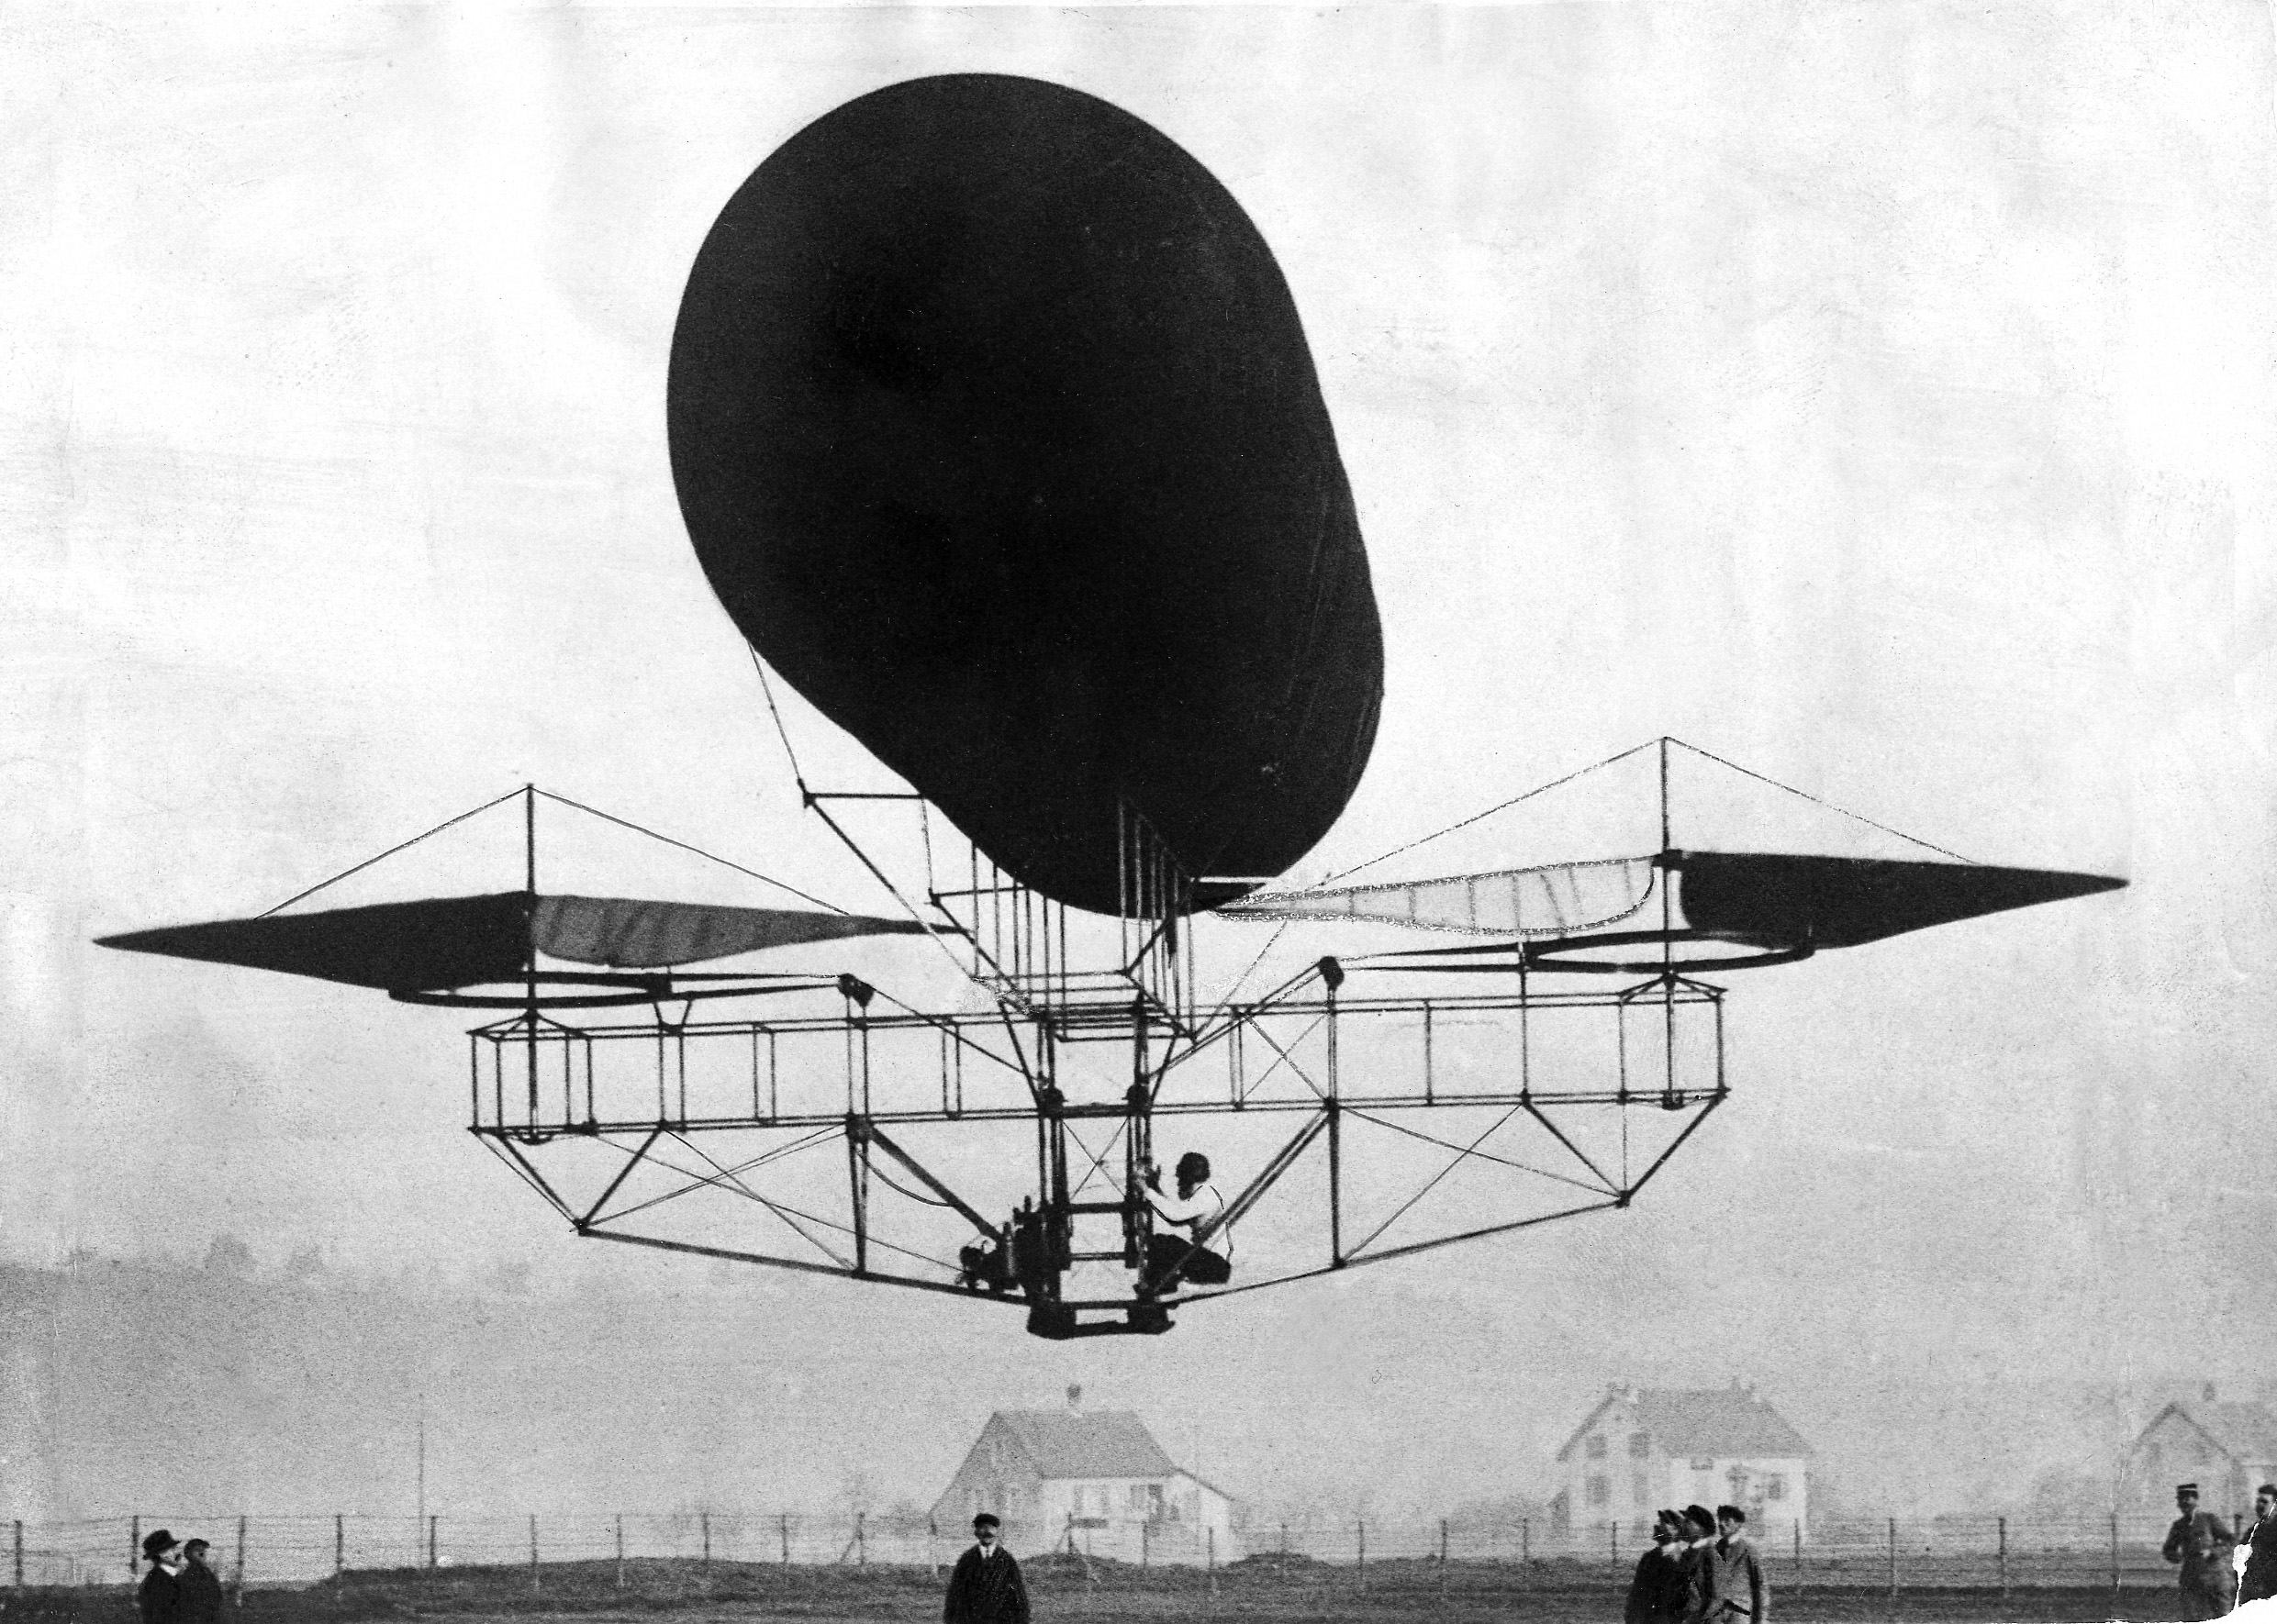 Etienne Oehmichen's experimental helicopter, 1921 (PHO-NC-3)